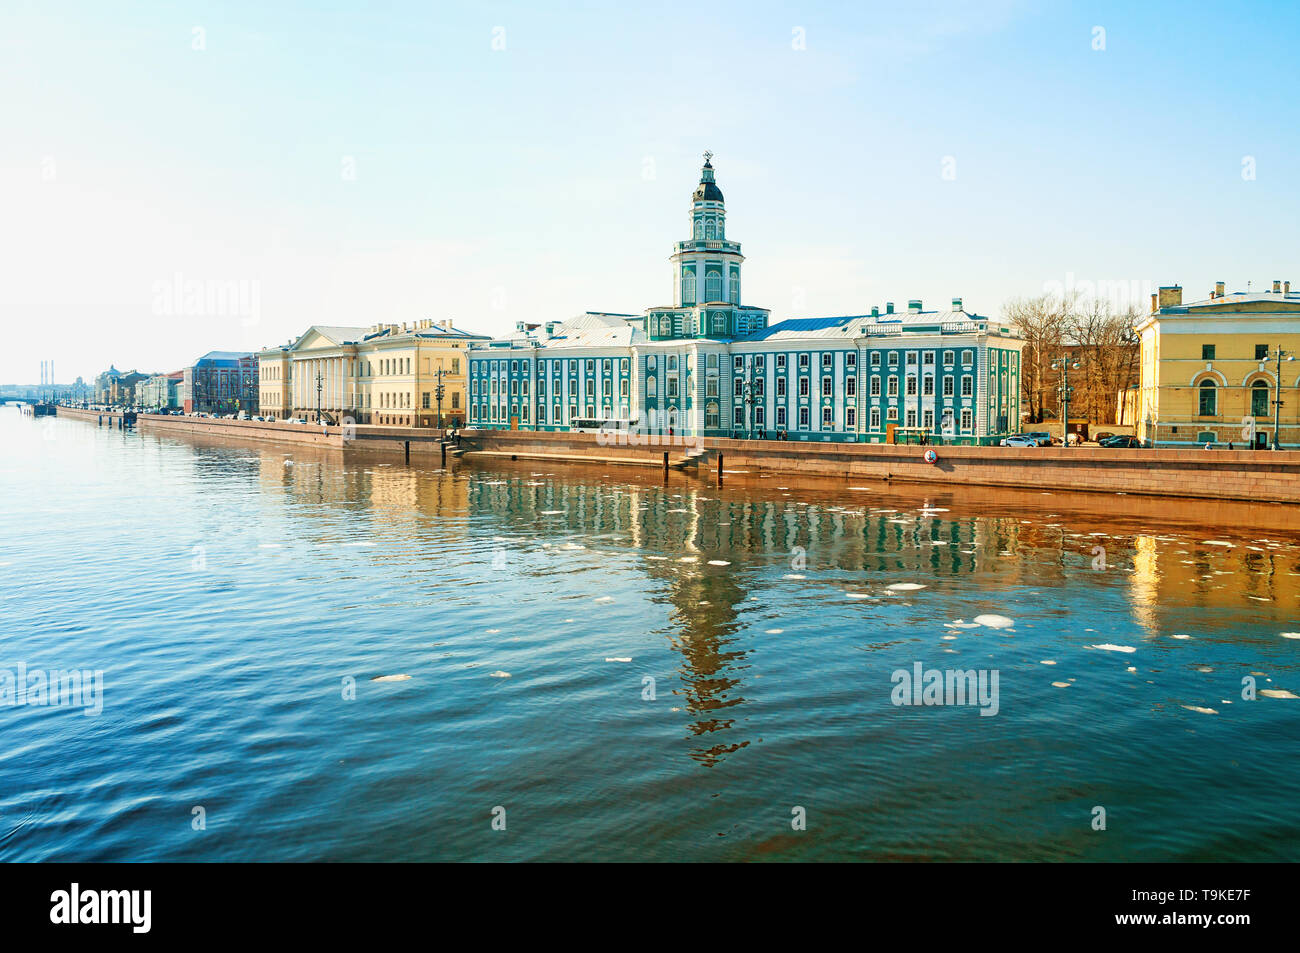 Saint Petersburg, Russia. Kunstkamera building at the University embankment of the Neva river in St Petersburg, Russia. City landscape - Stock Image